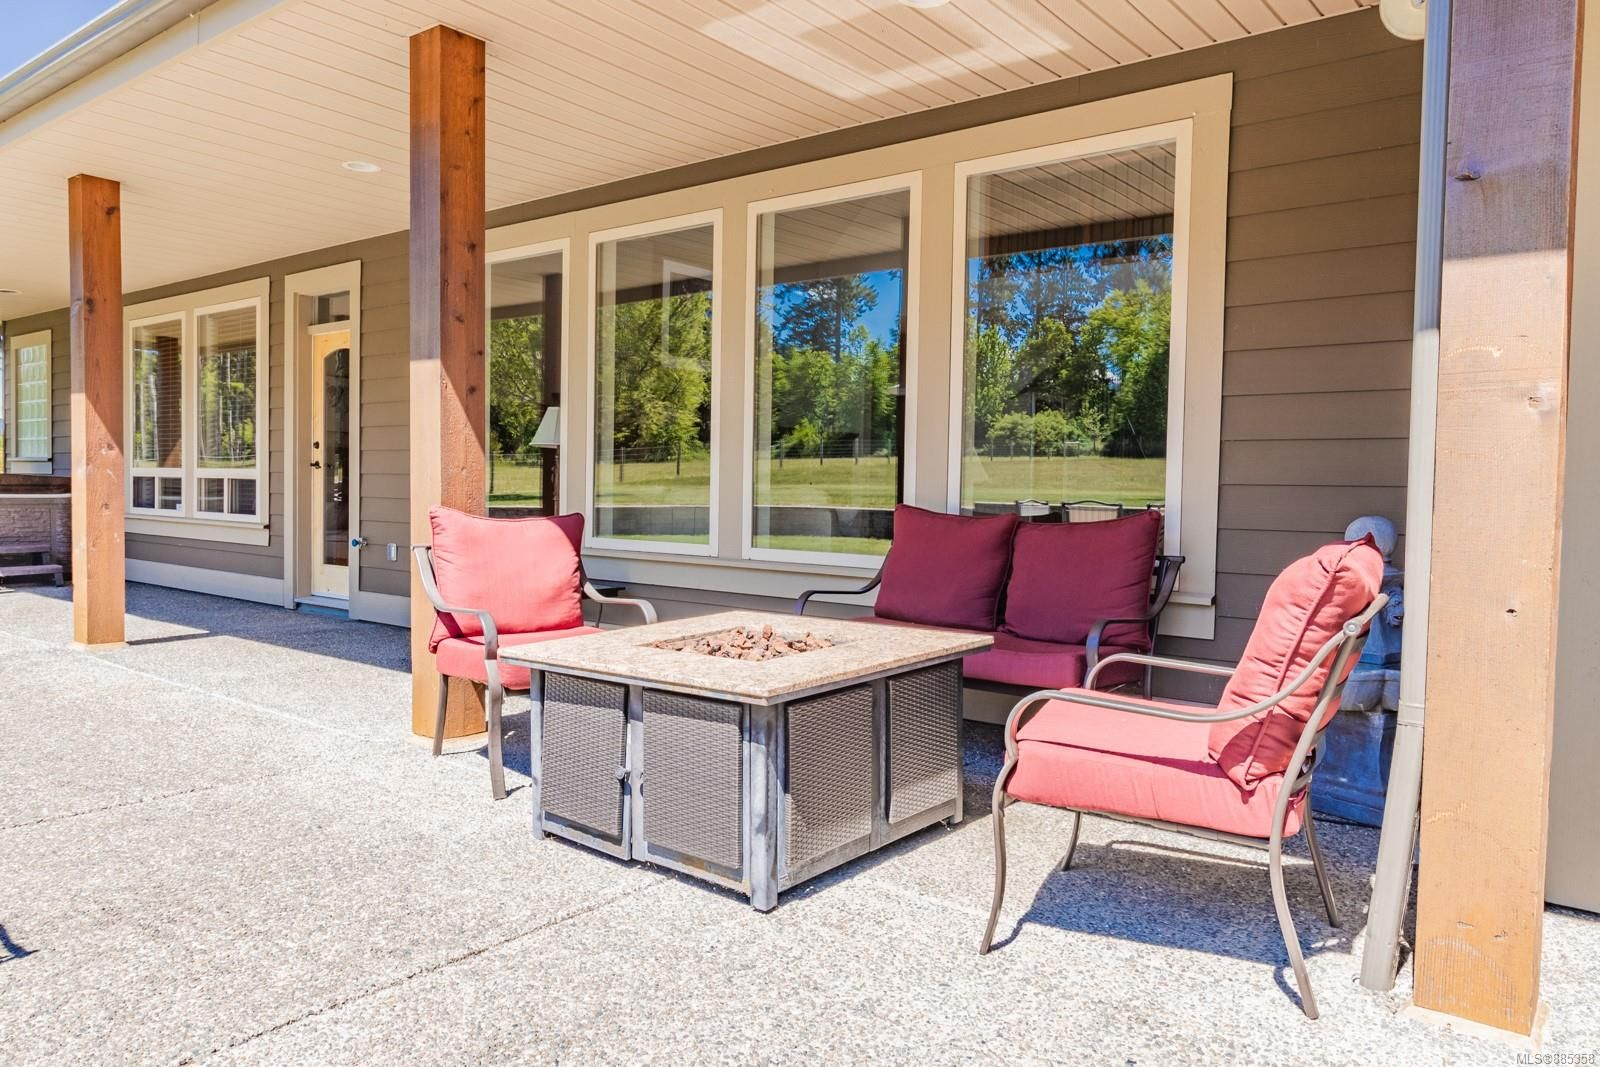 Photo 52: Photos: 2850 Peters Rd in : PQ Qualicum Beach House for sale (Parksville/Qualicum)  : MLS®# 885358